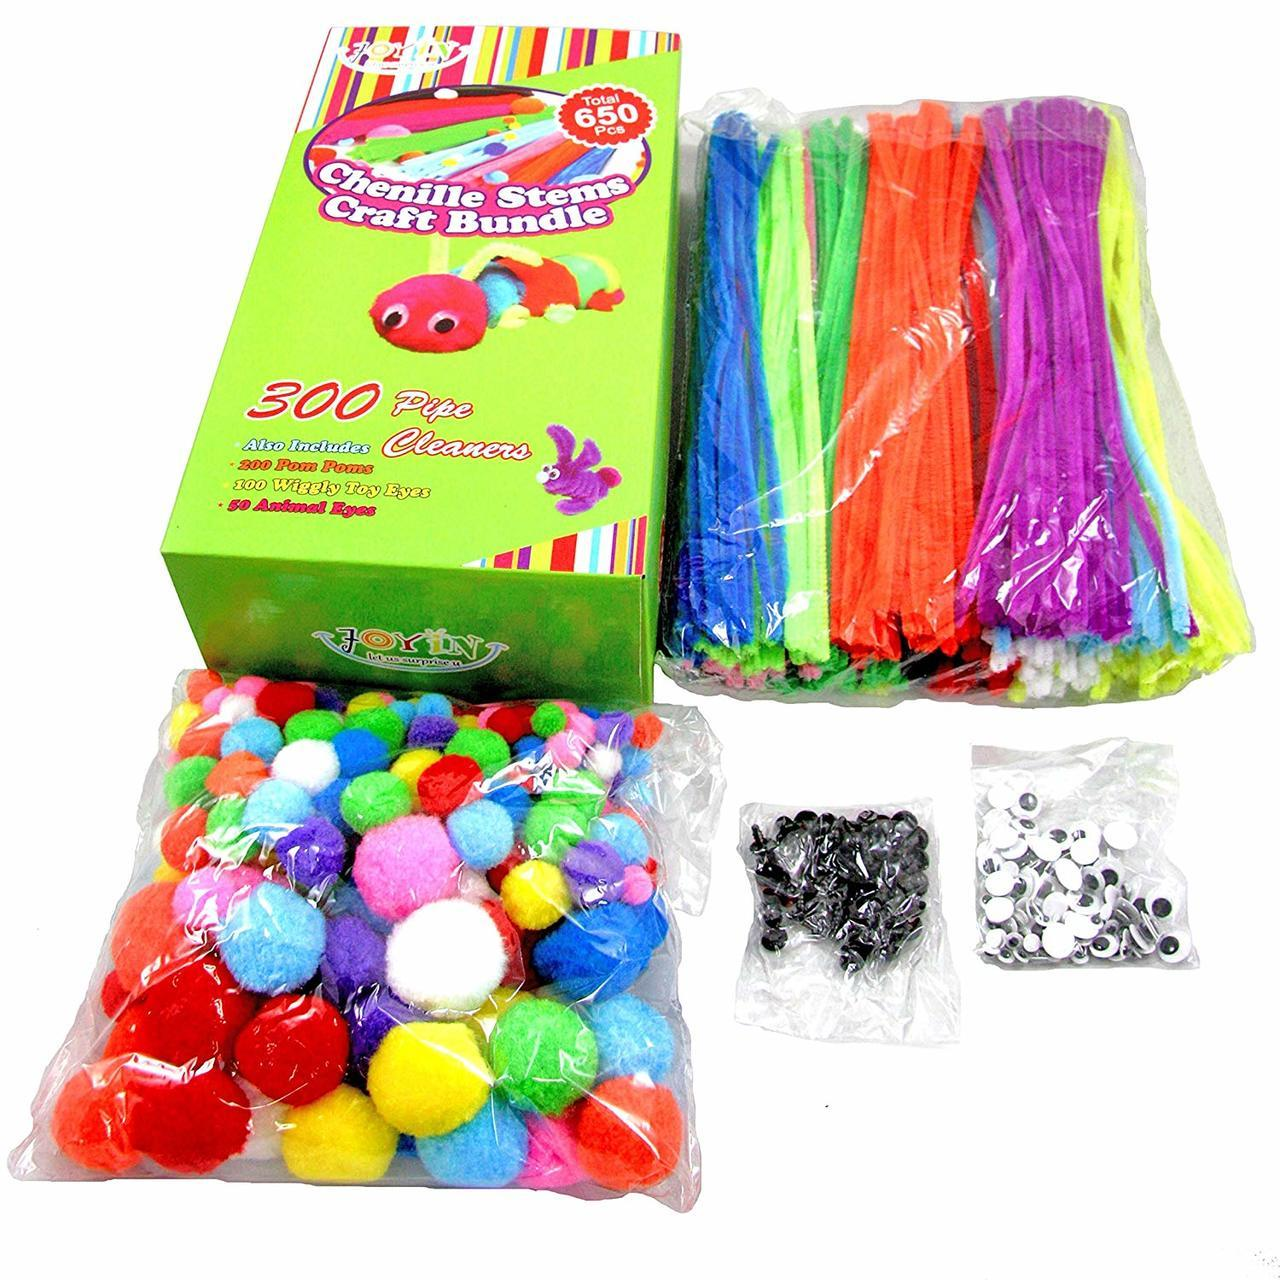 Craft Pipe Cleaners Chenille Stems Bundle, 650-Piece Set